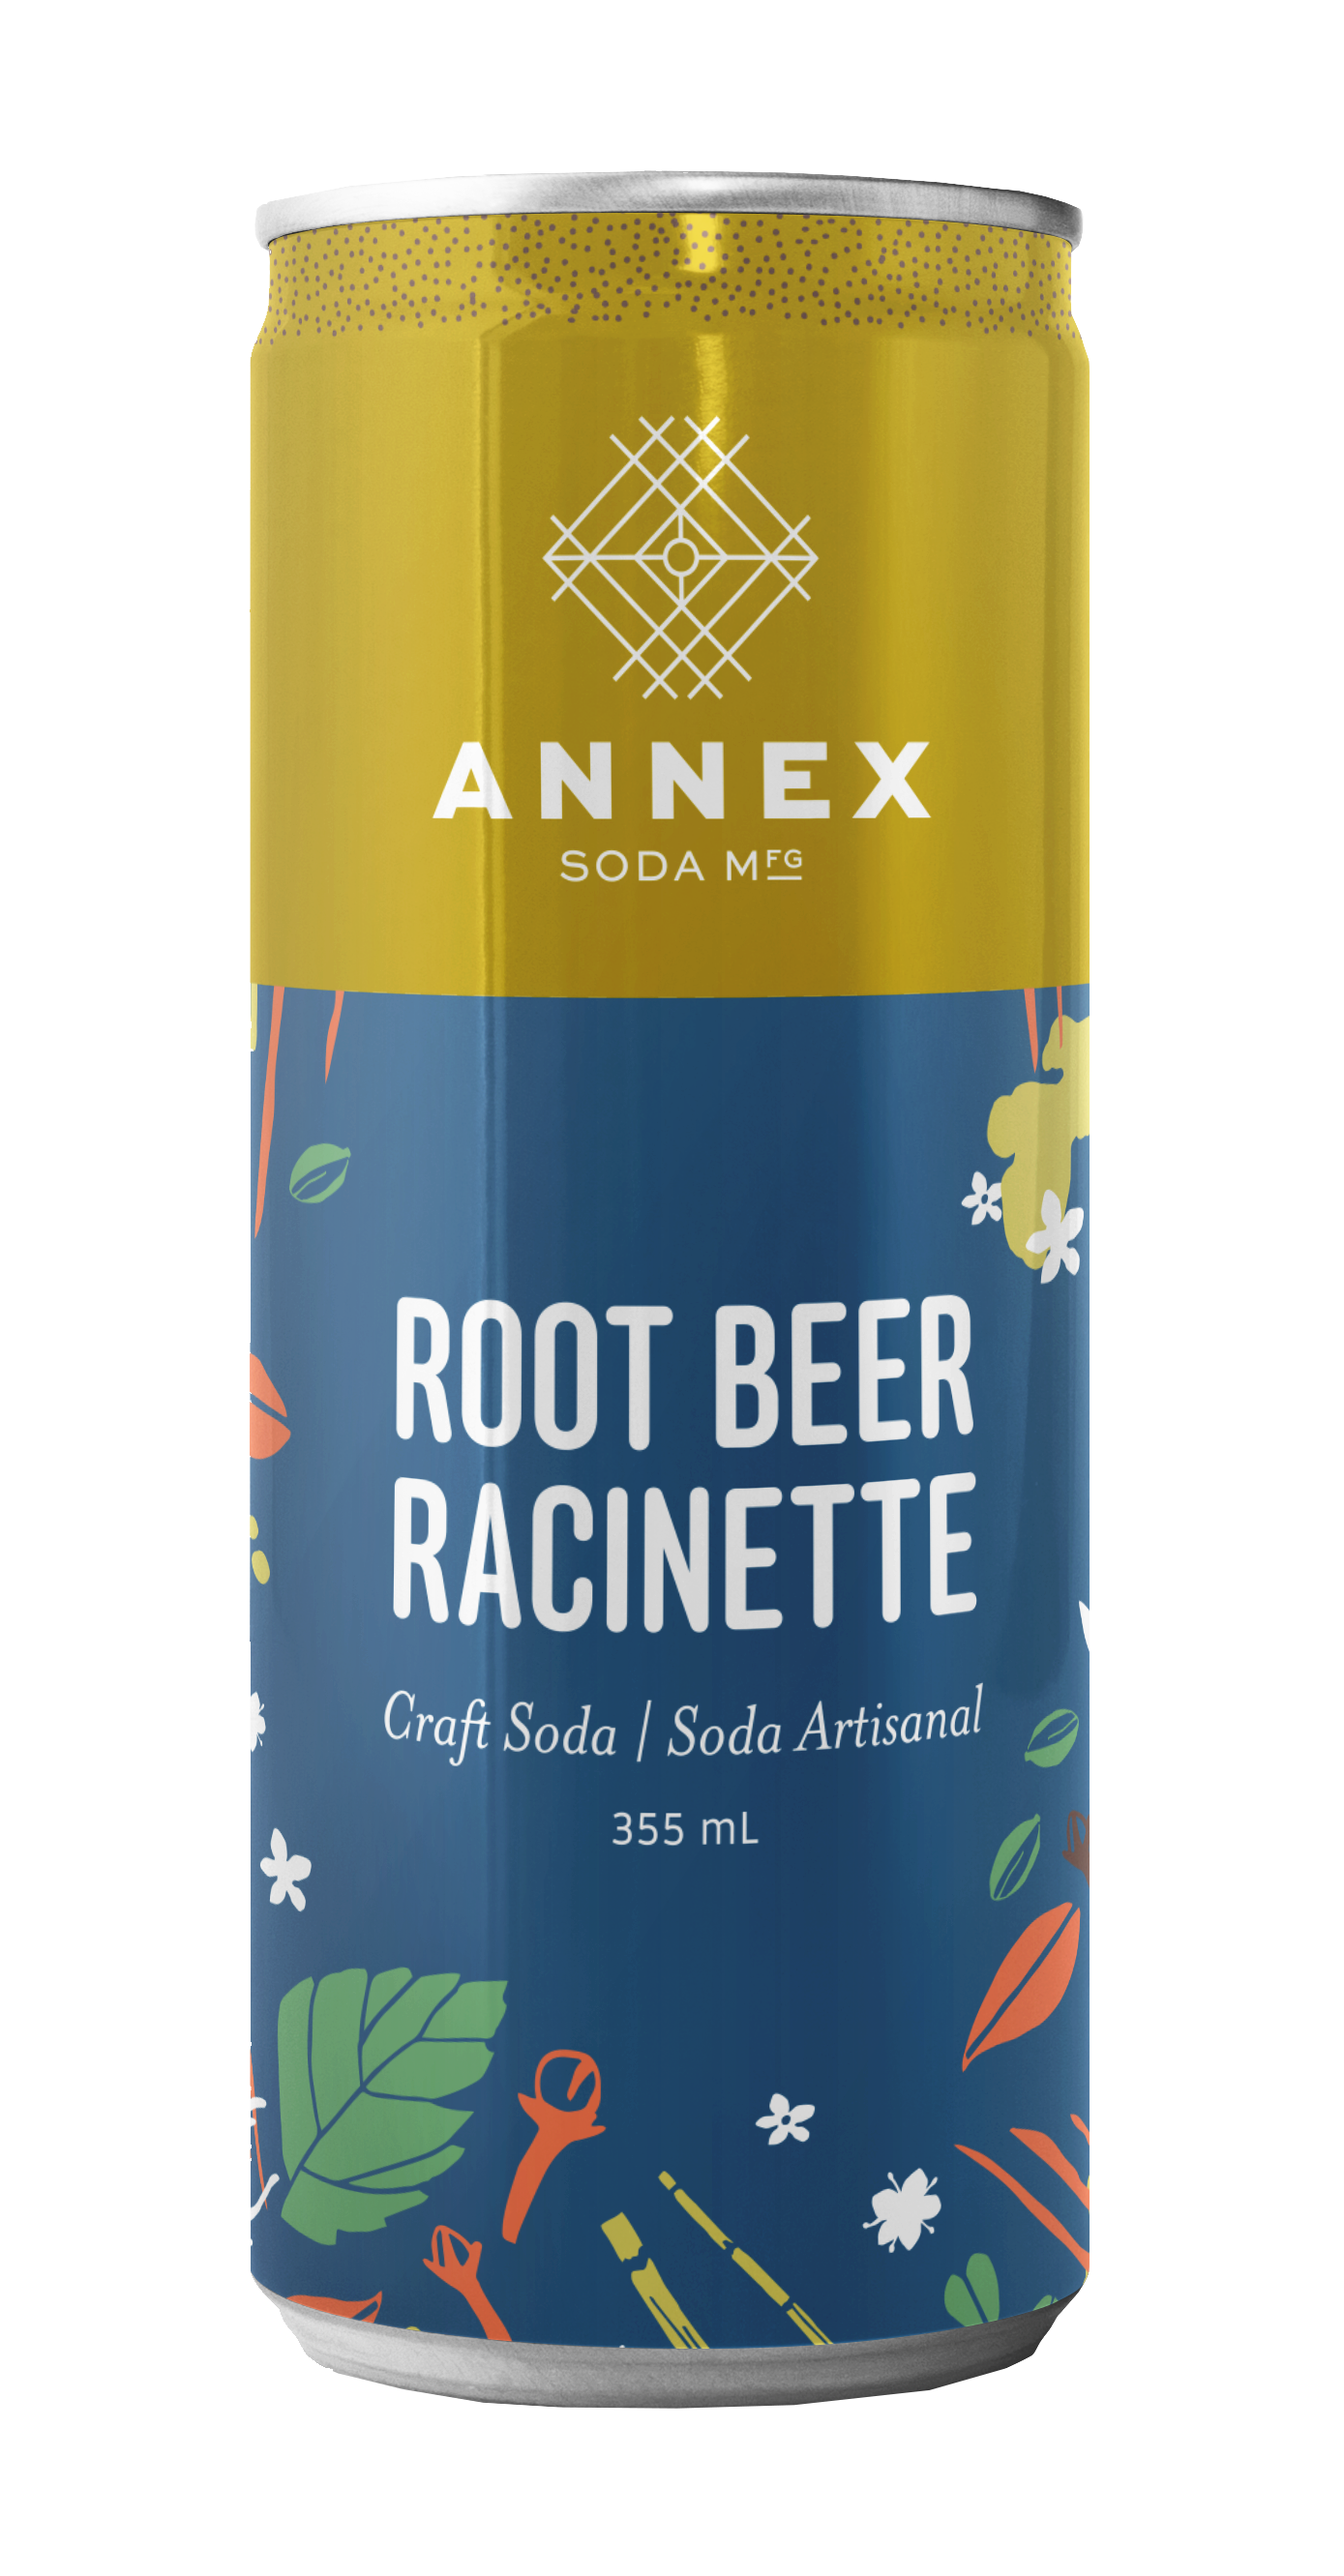 RootbeerCanMockup.png